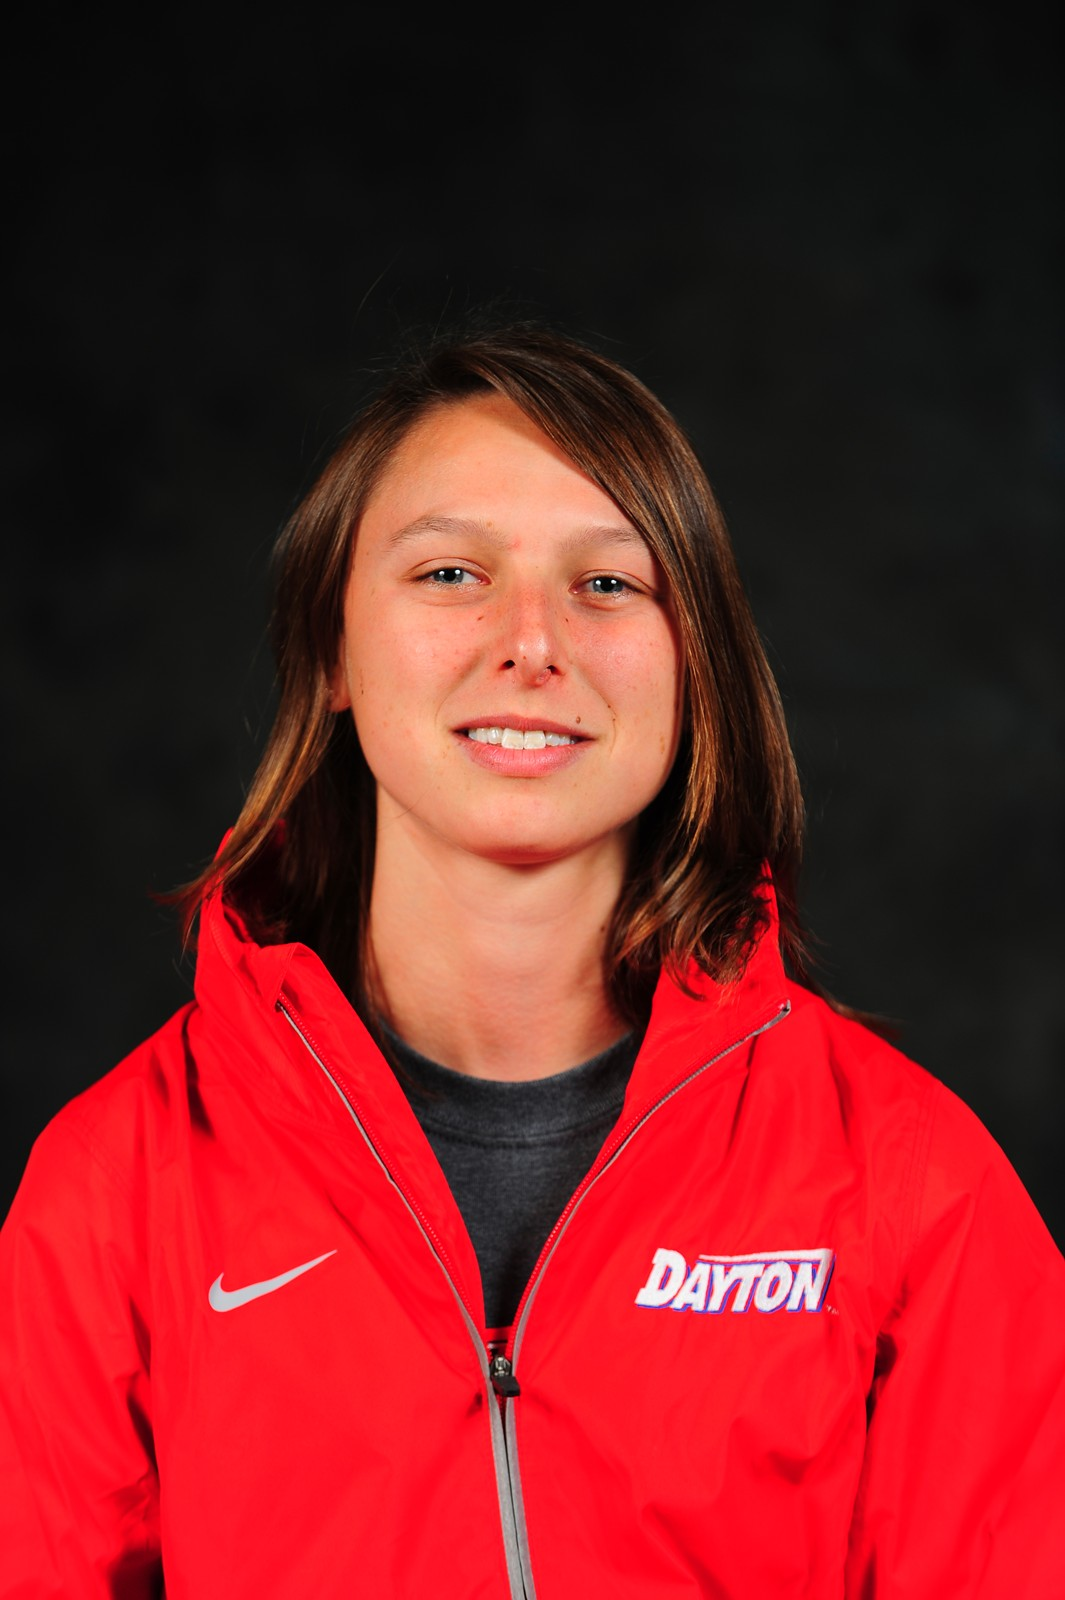 All About Lizzie 2012 lizzie gleason - women's track and field - university of